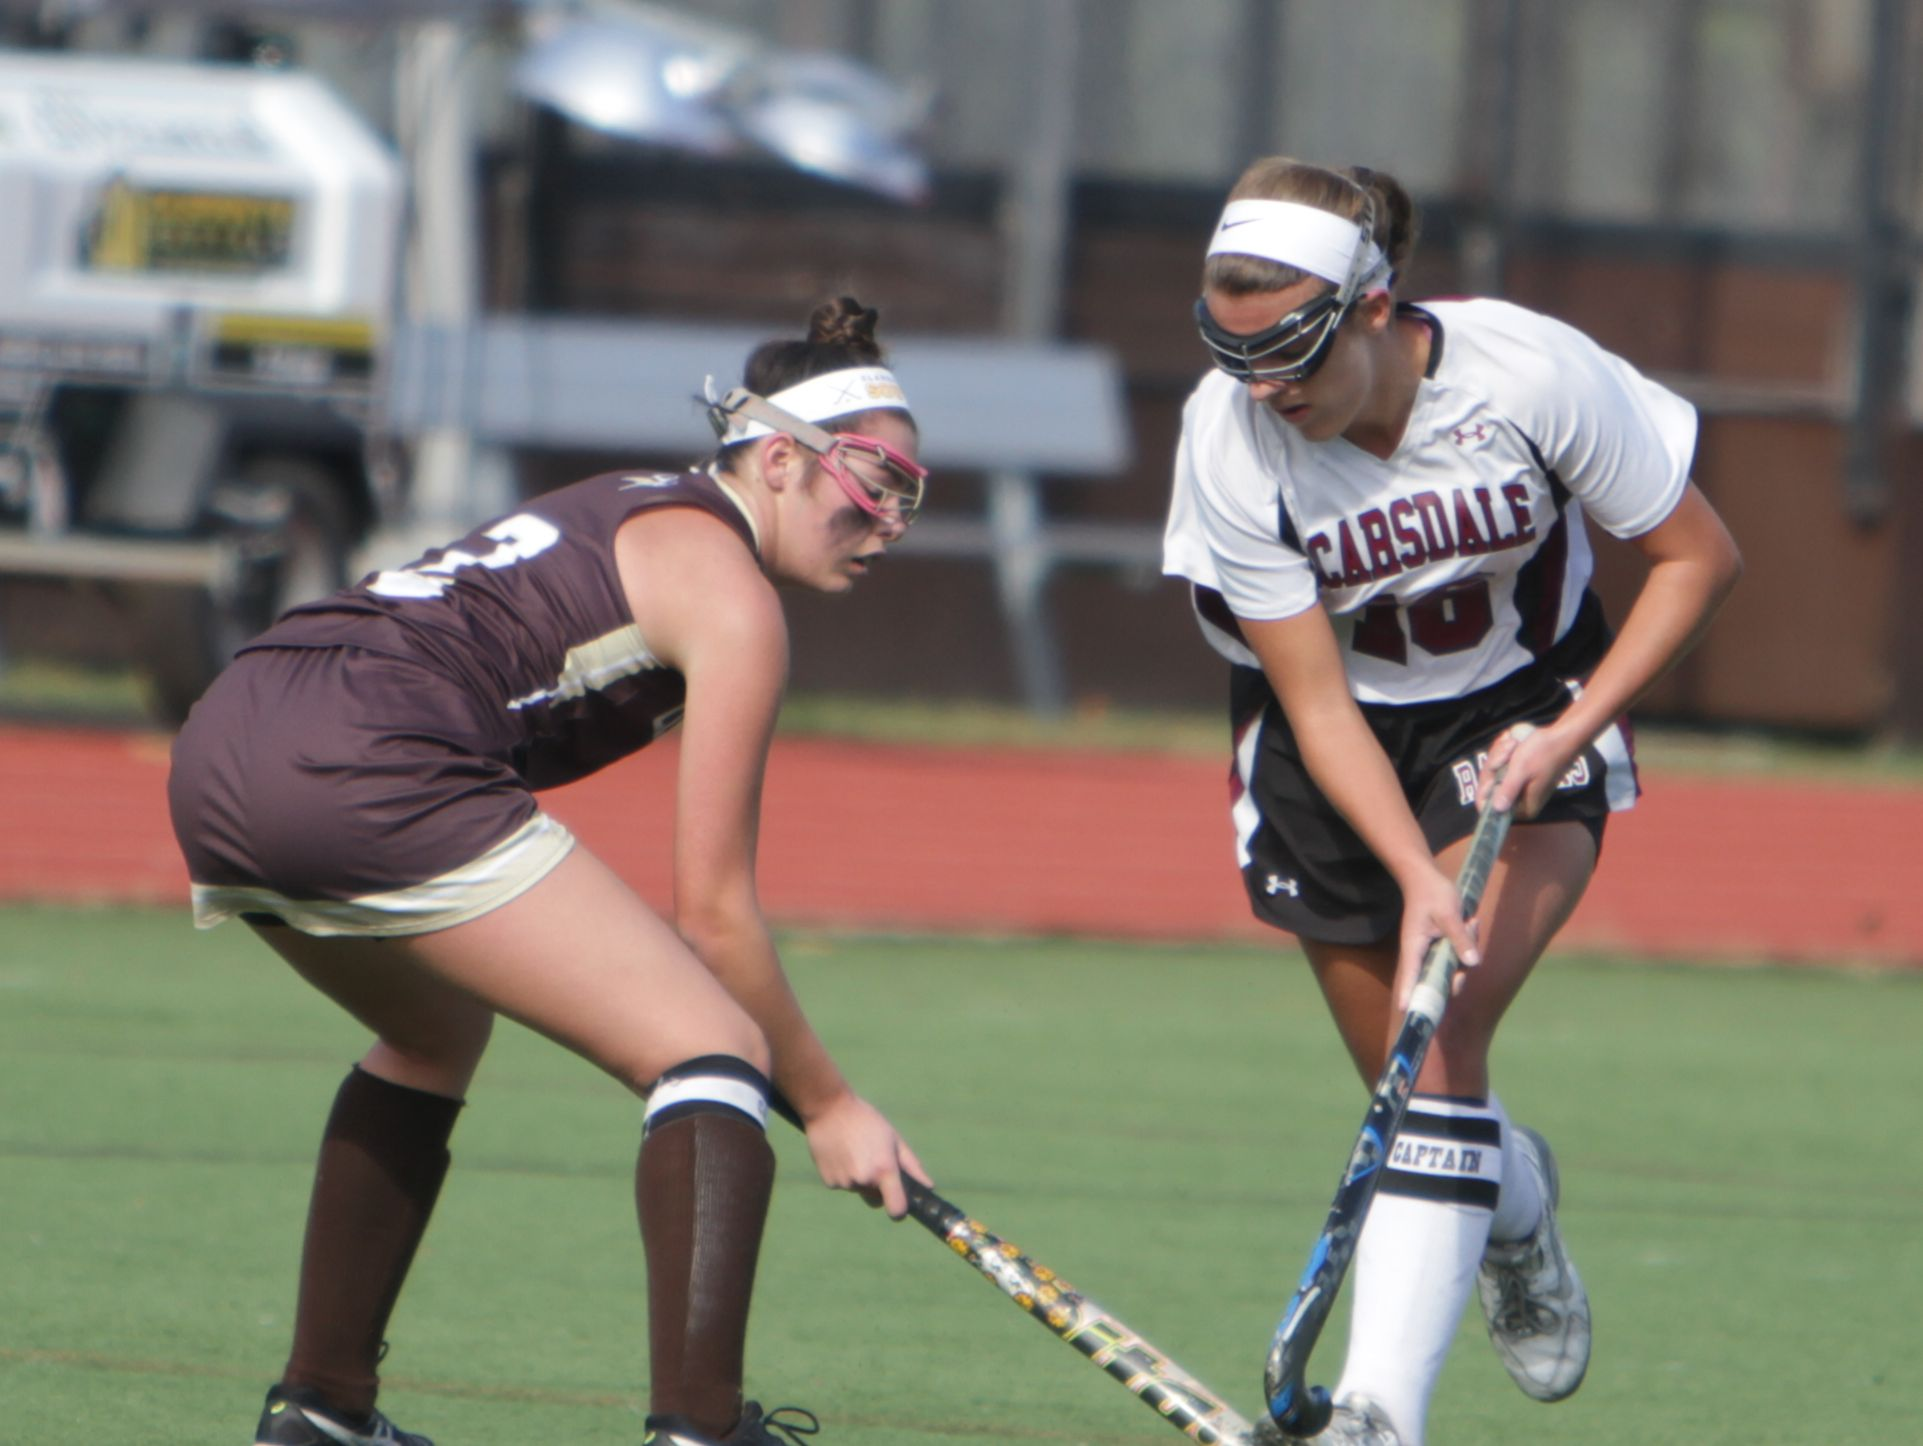 Scarsdale's Erin Nicholas (right) stickhandles past Colleen Geyer during a Section 1, Class A field hockey semifinal game between Scarsdale and Clarkstown South at Scarsdale High School on Saturday, Oct. 29, 2016. Scarsdale won 7-1.